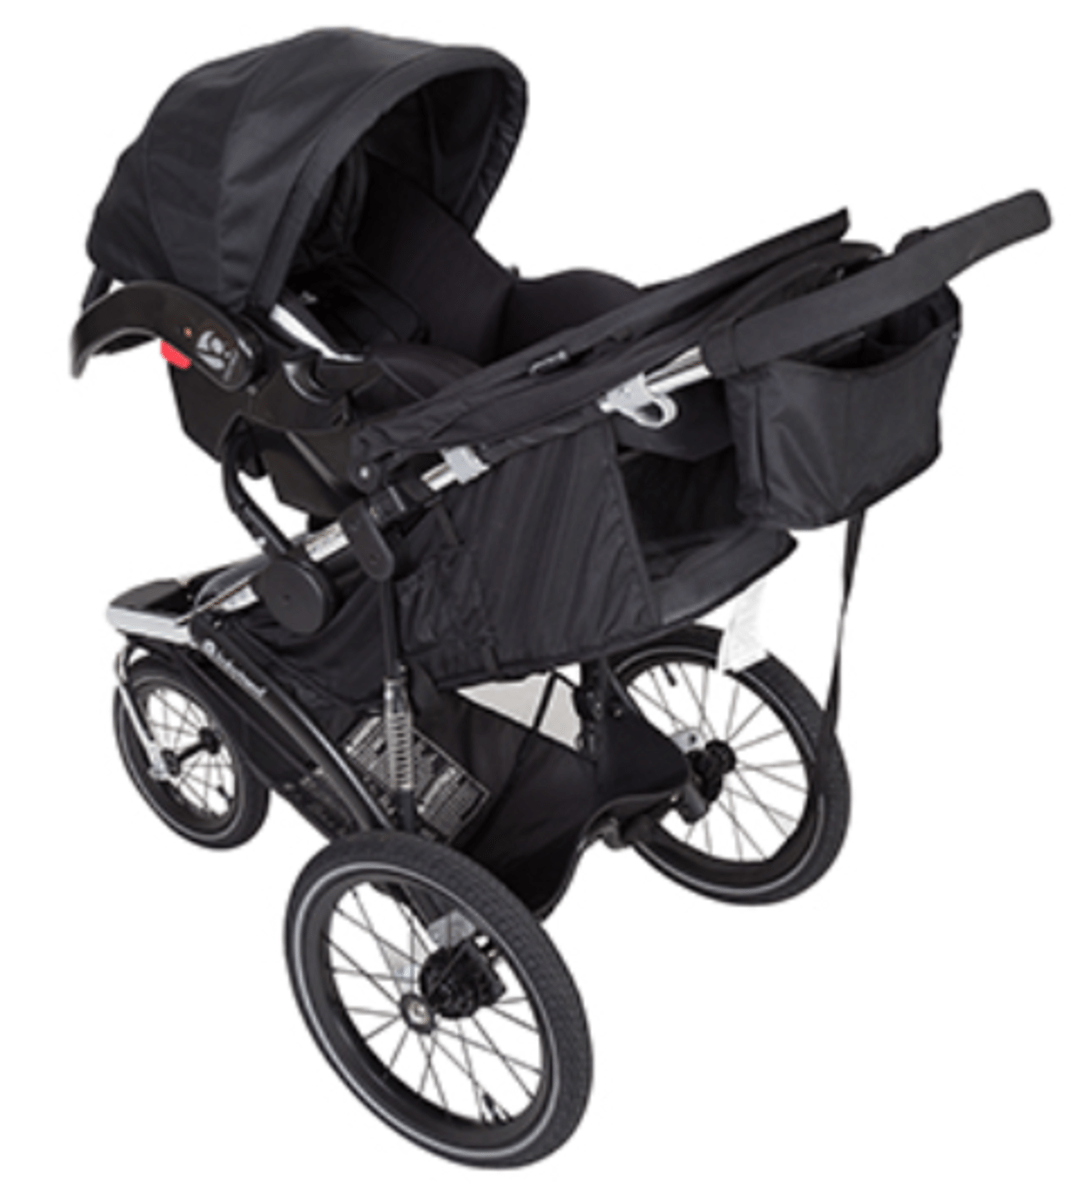 Jogging Stroller How To Use Best Jogging Stroller Babytrend Falcon Jogger Review